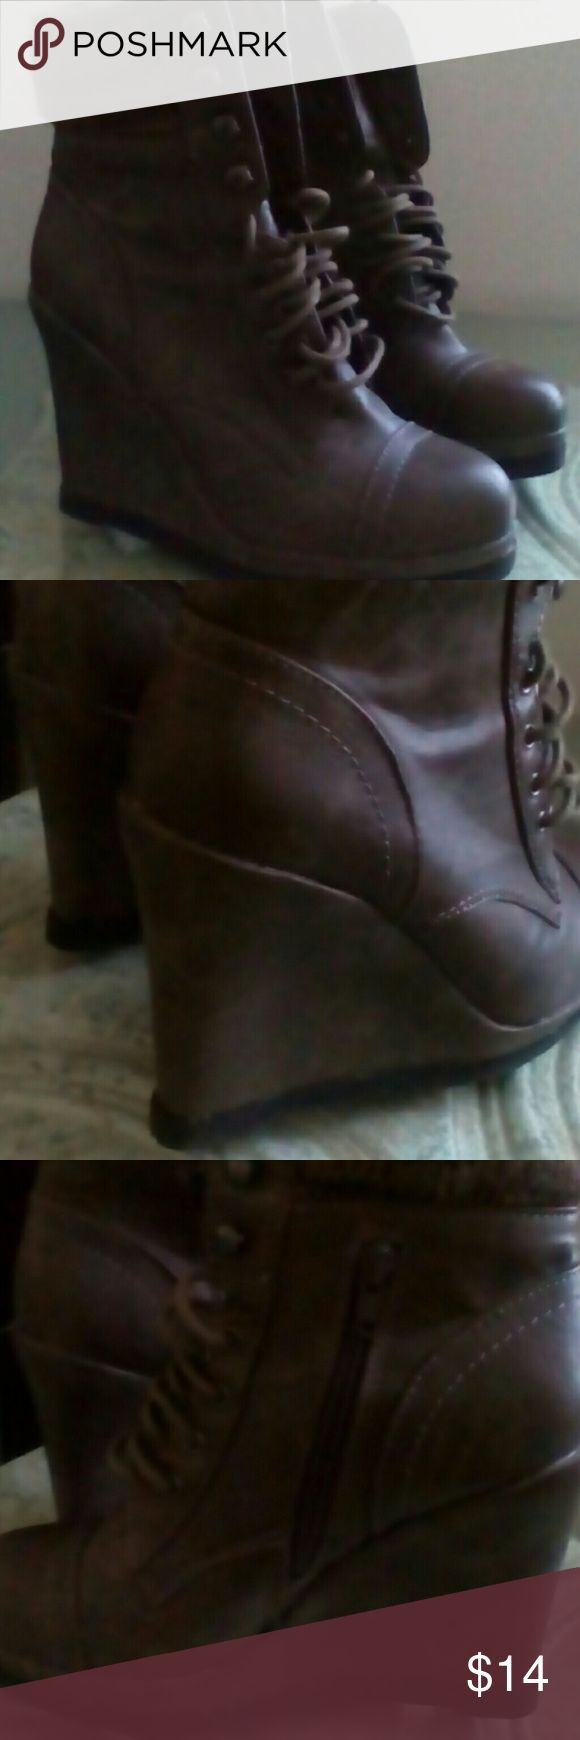 Ankle Boots Wedge ankle boot with side zip ,laced in front Shoes Ankle Boots & Booties